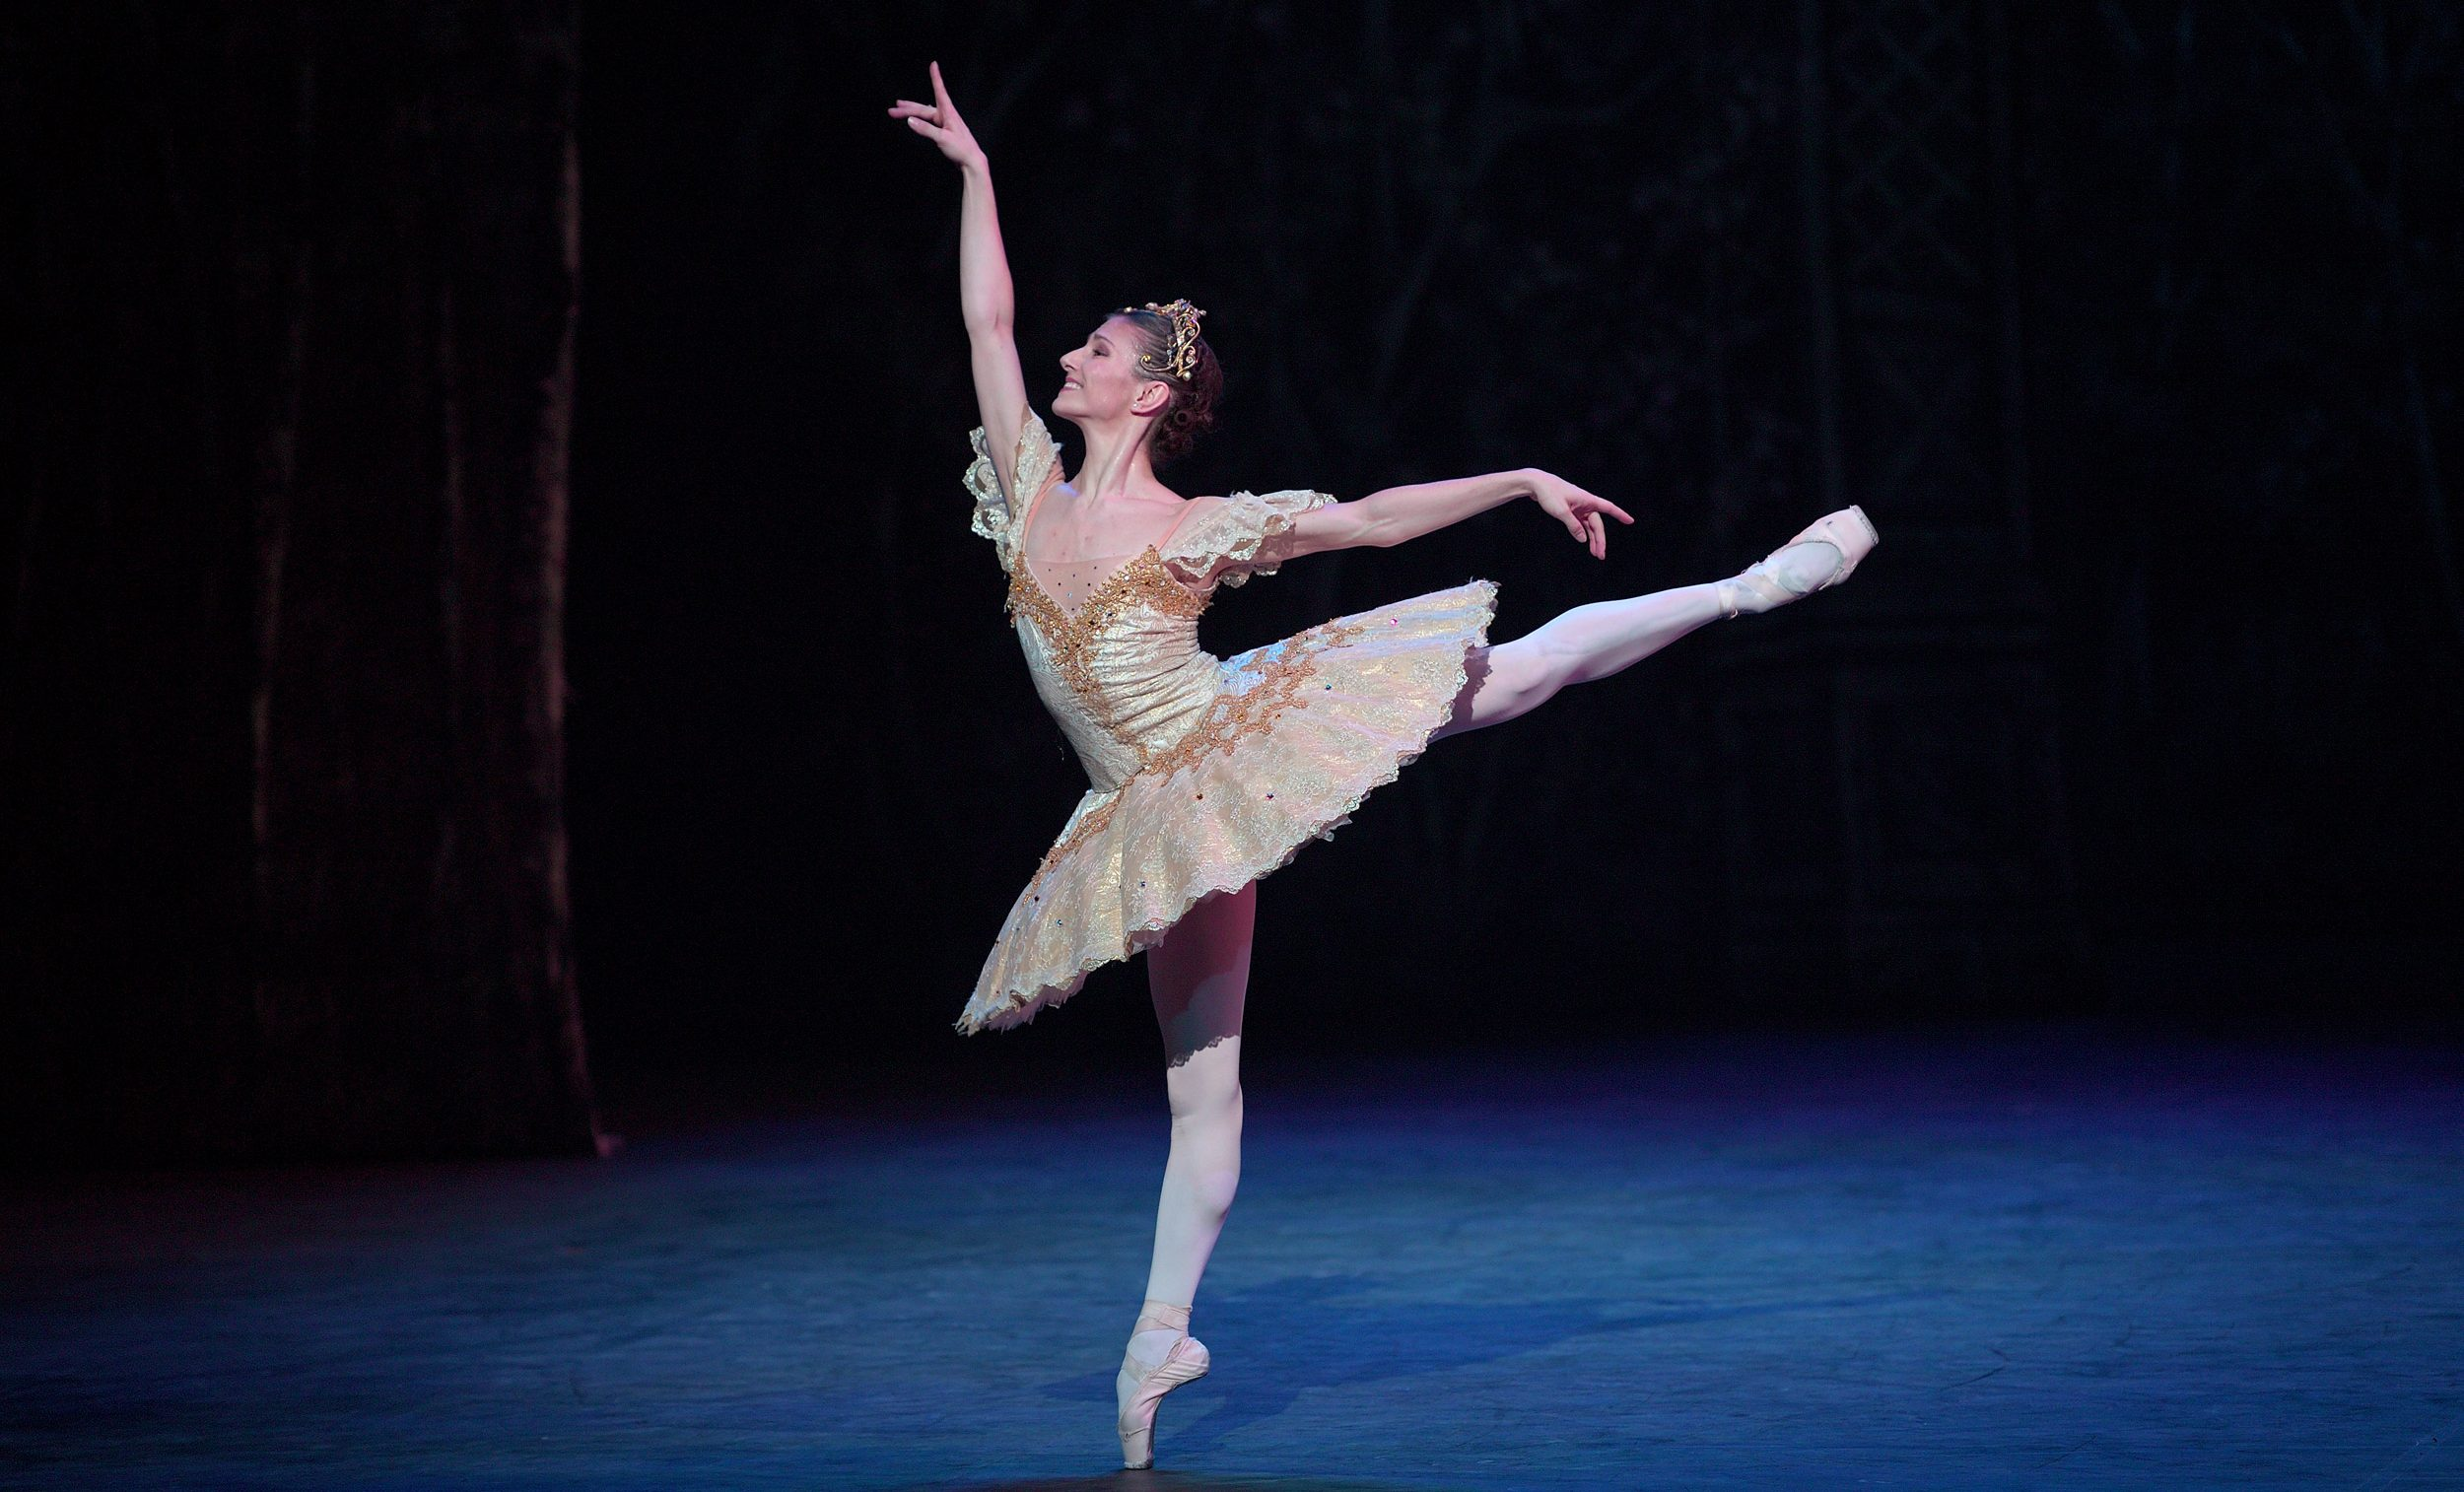 Alina-Cojocaru-in-English-National-Ballet's-Nutcracker-(C)-Laurent-Liotardo-2500px-for-web